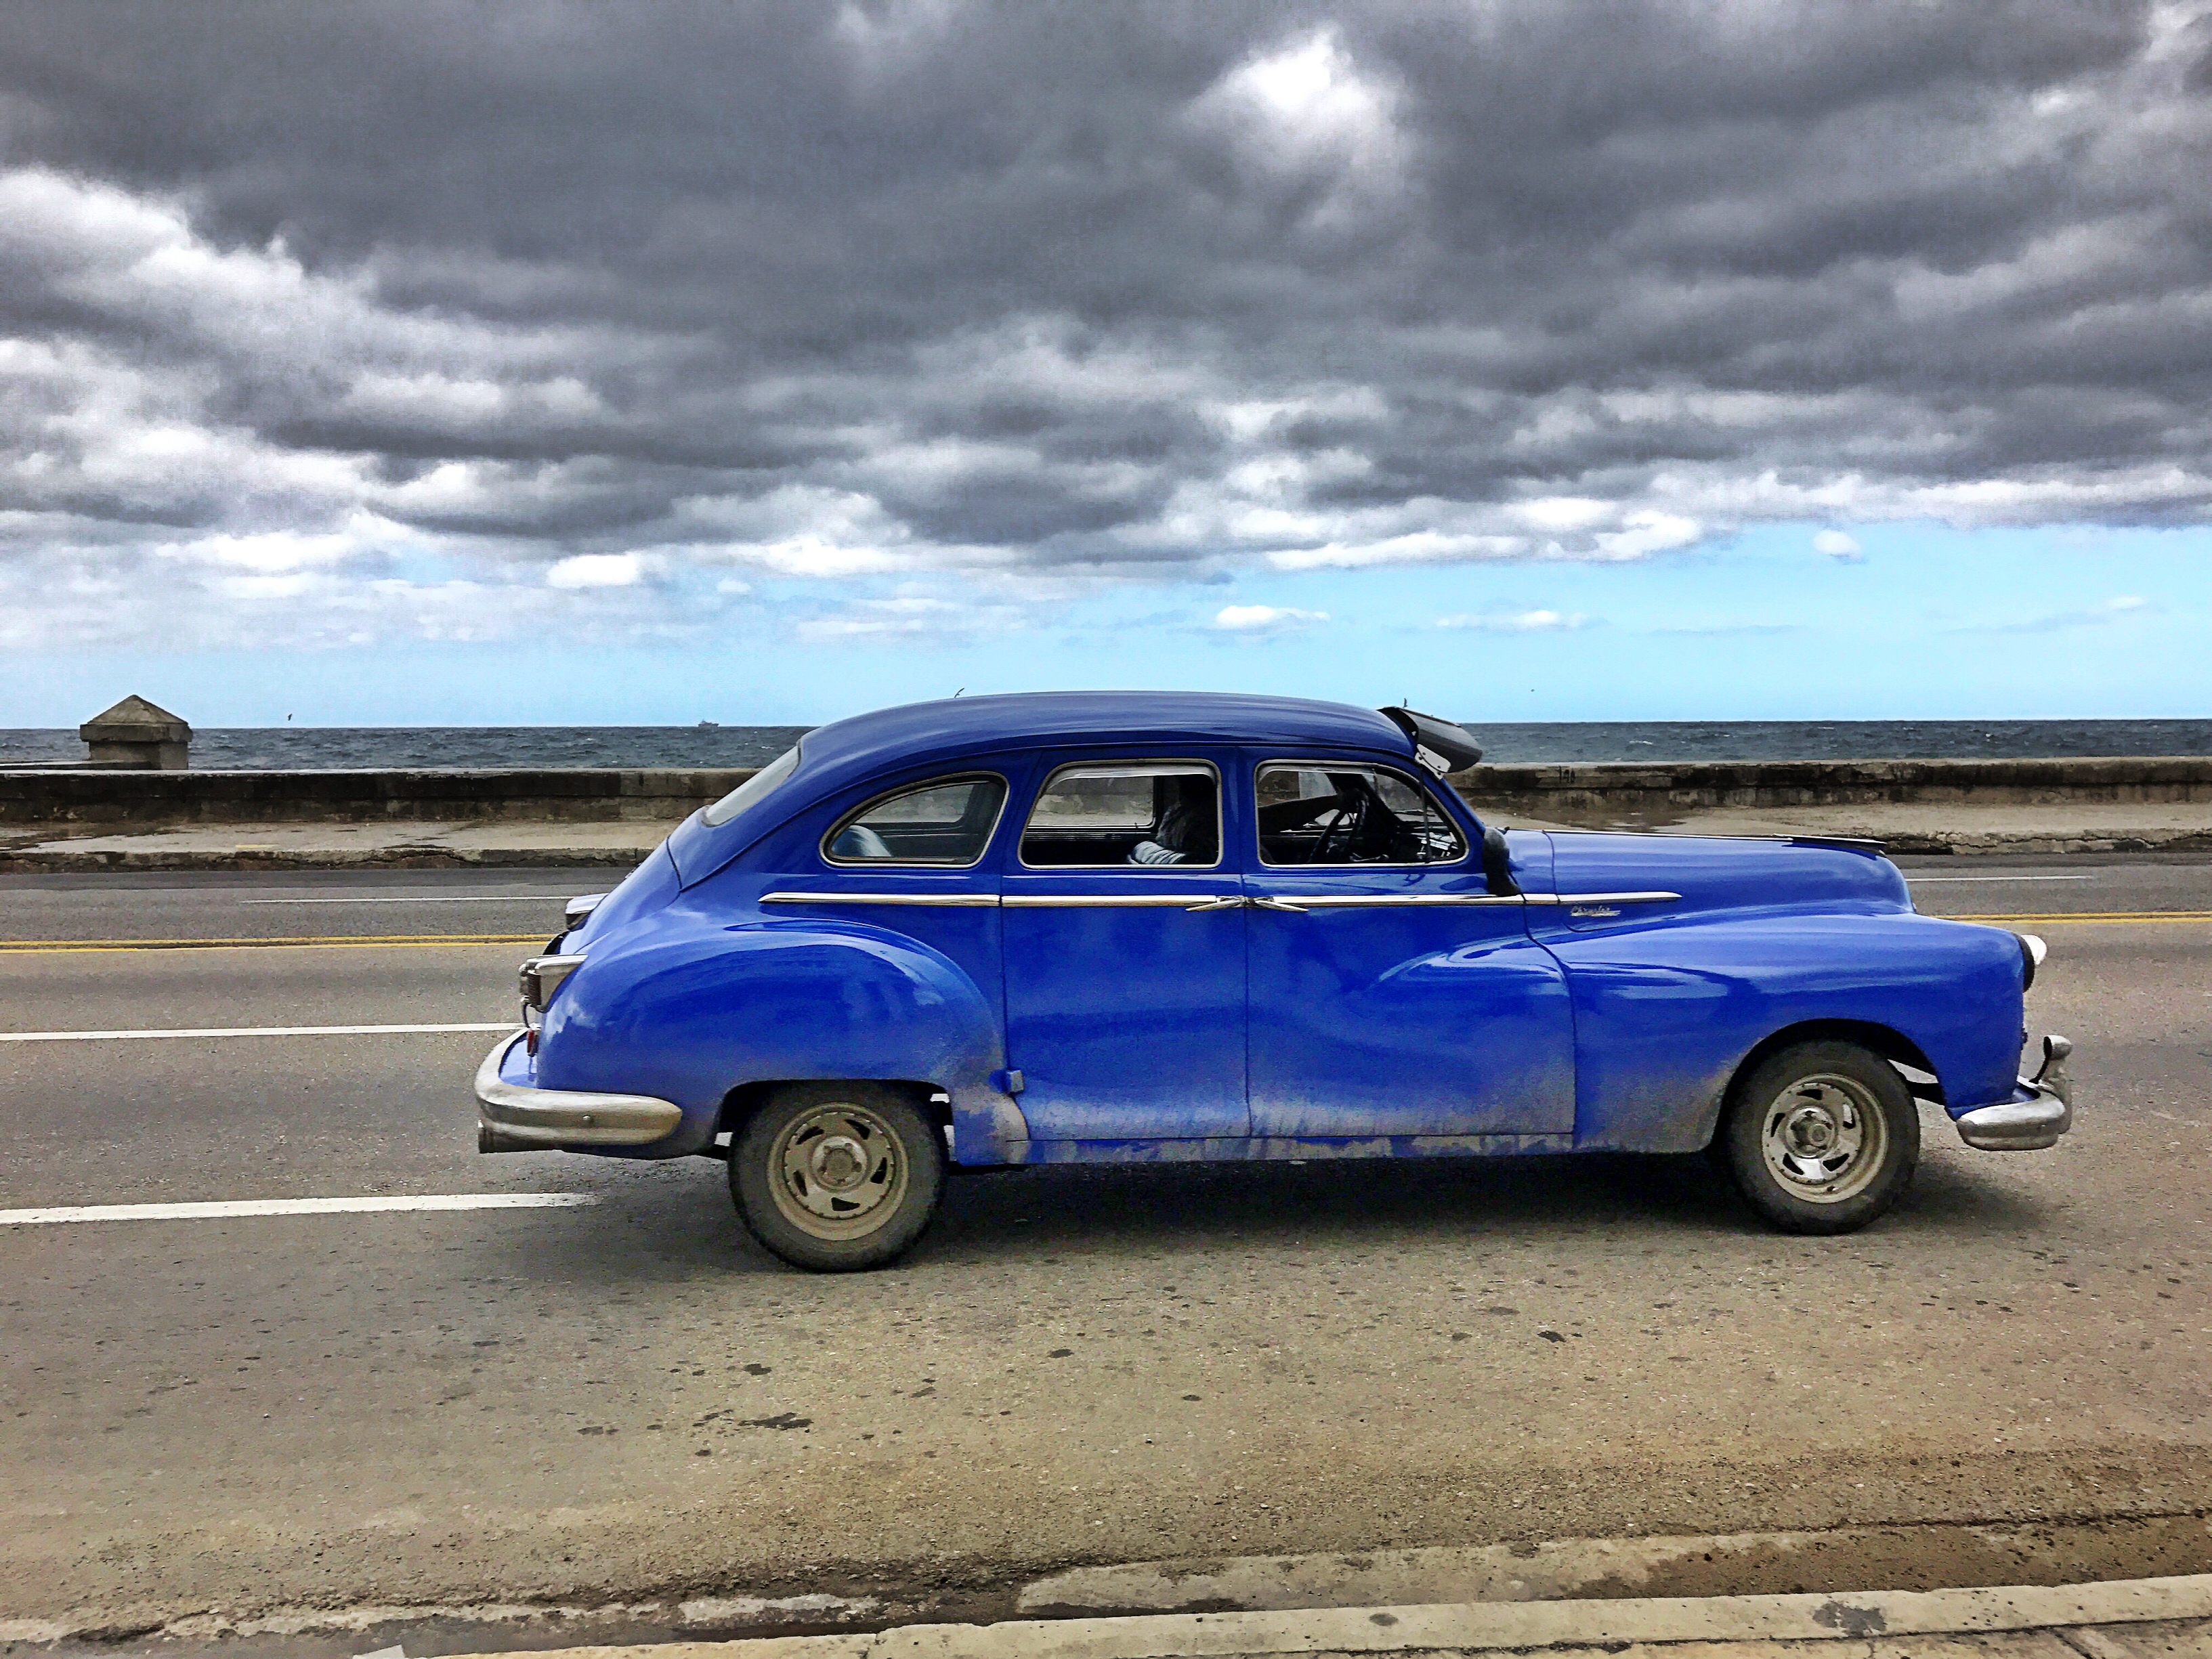 blue-car-on-malecon-old-havana